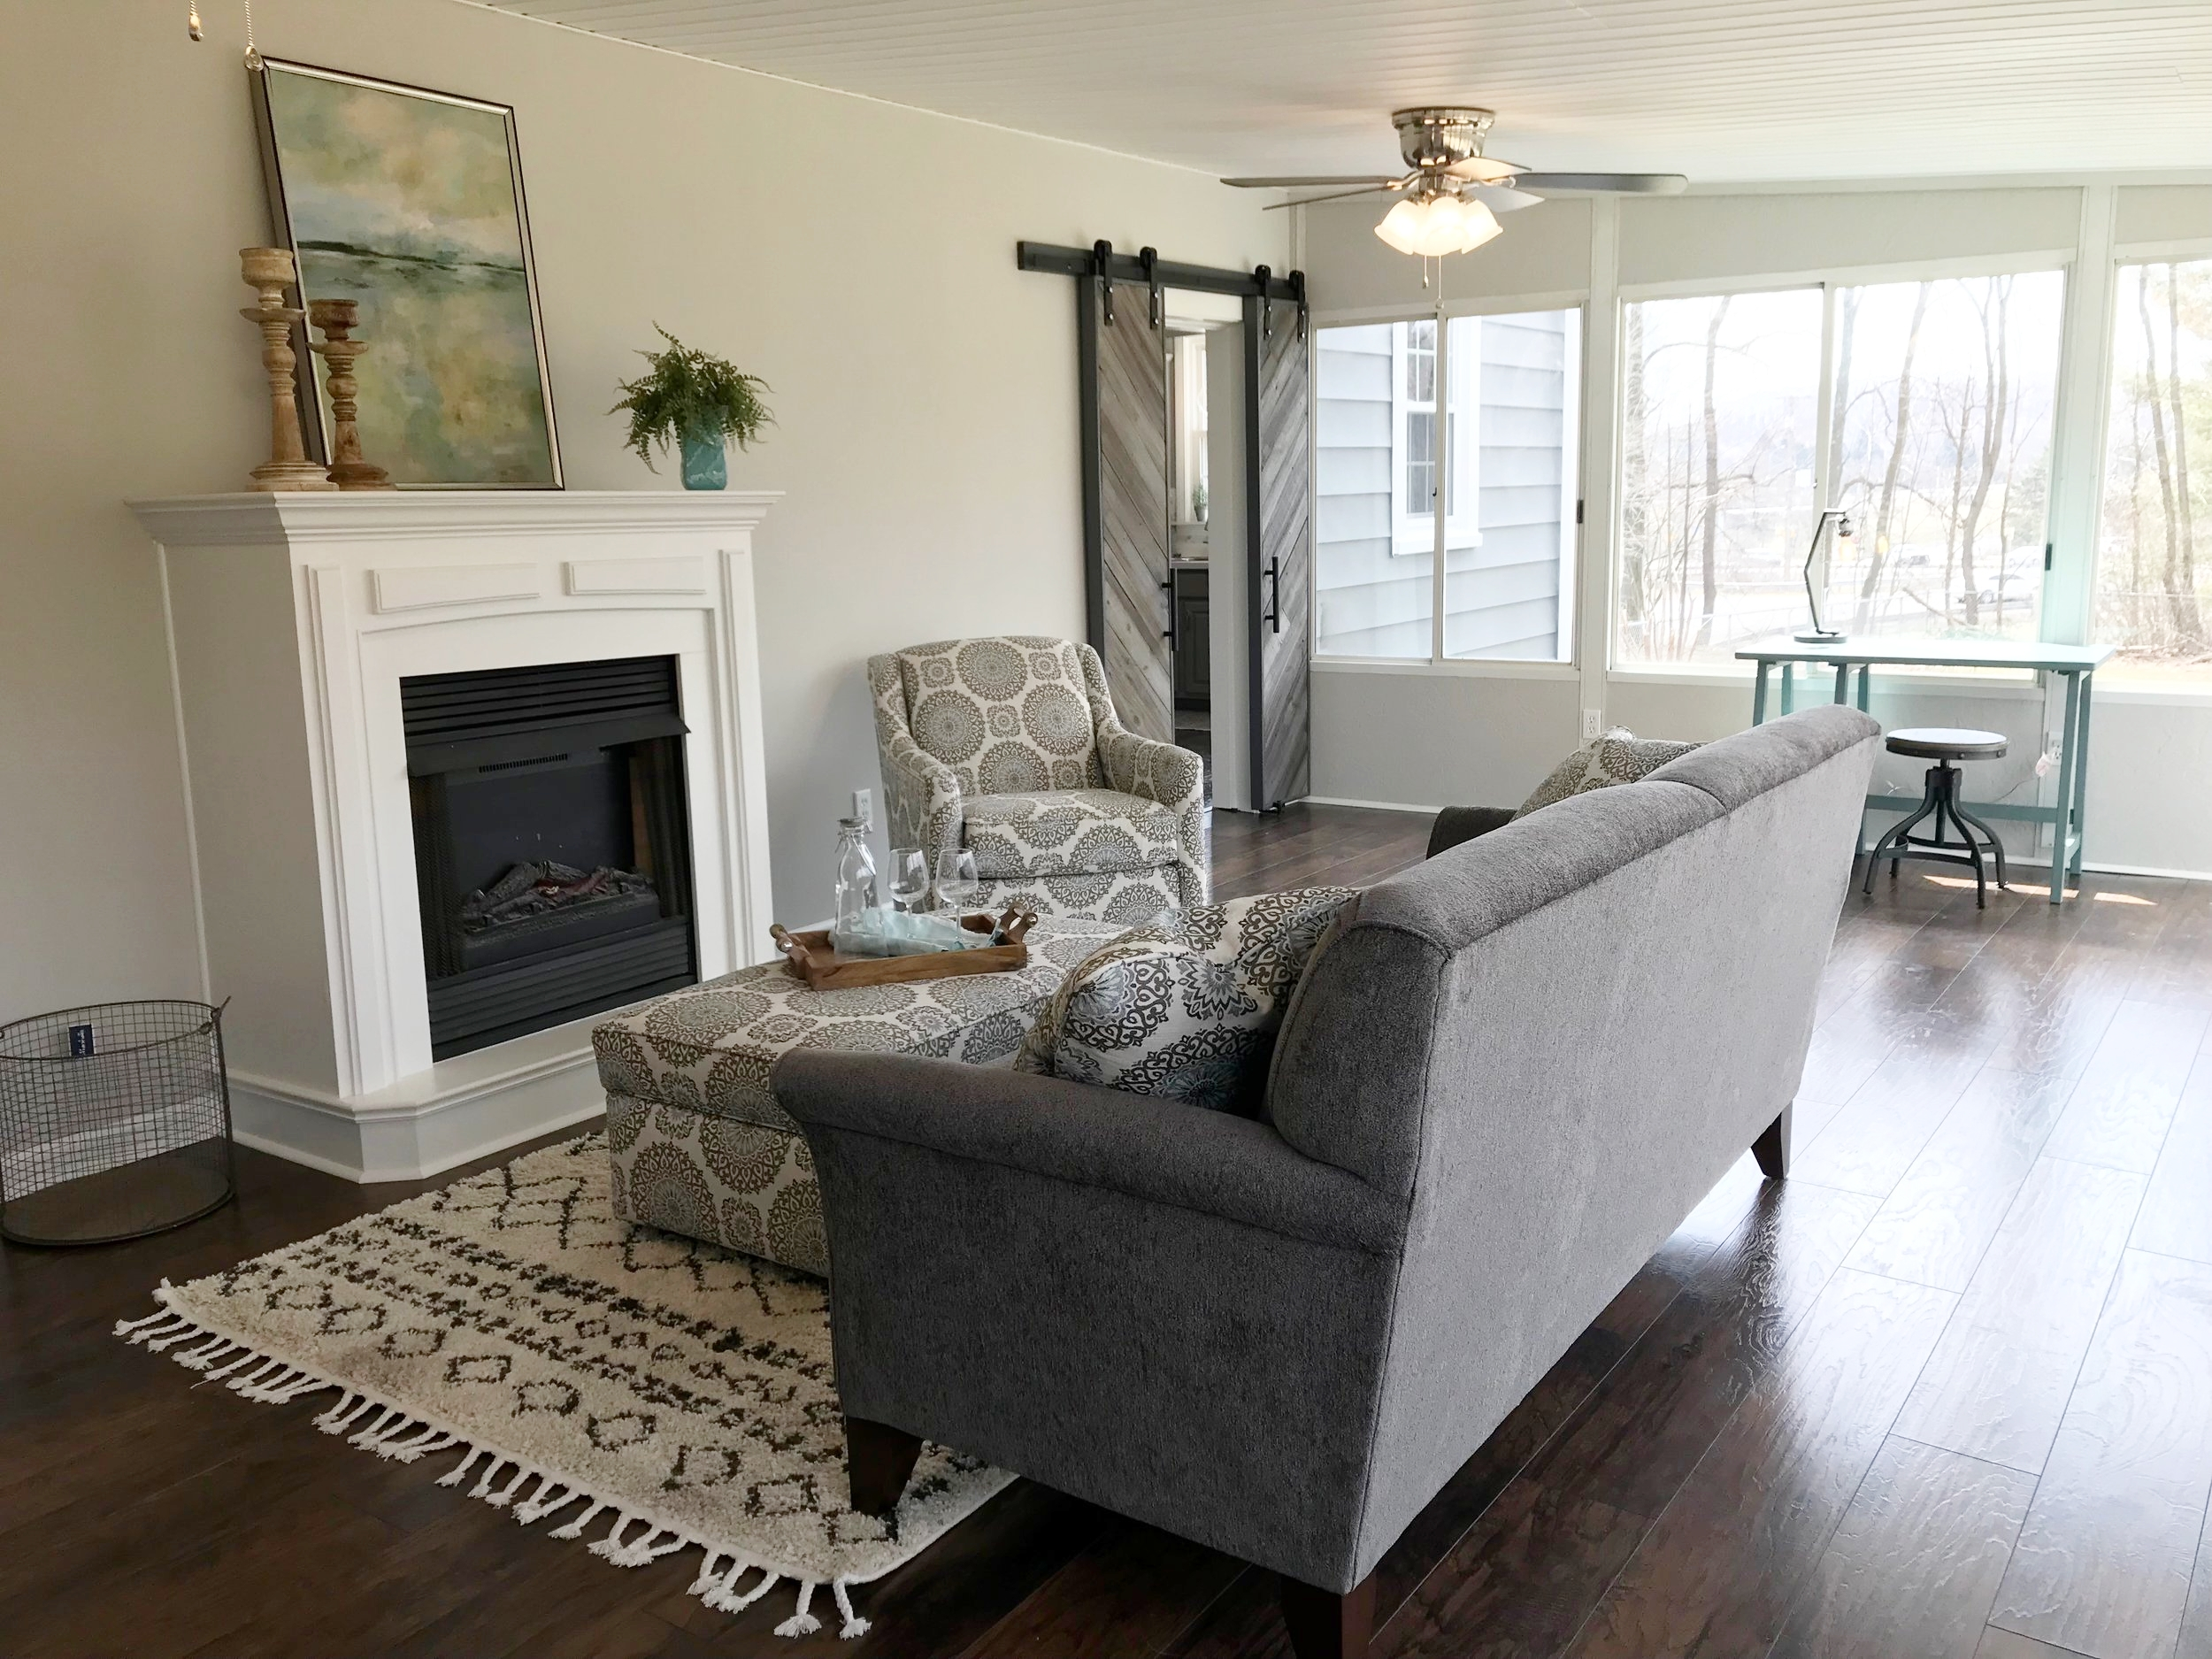 should I use a home staging service?